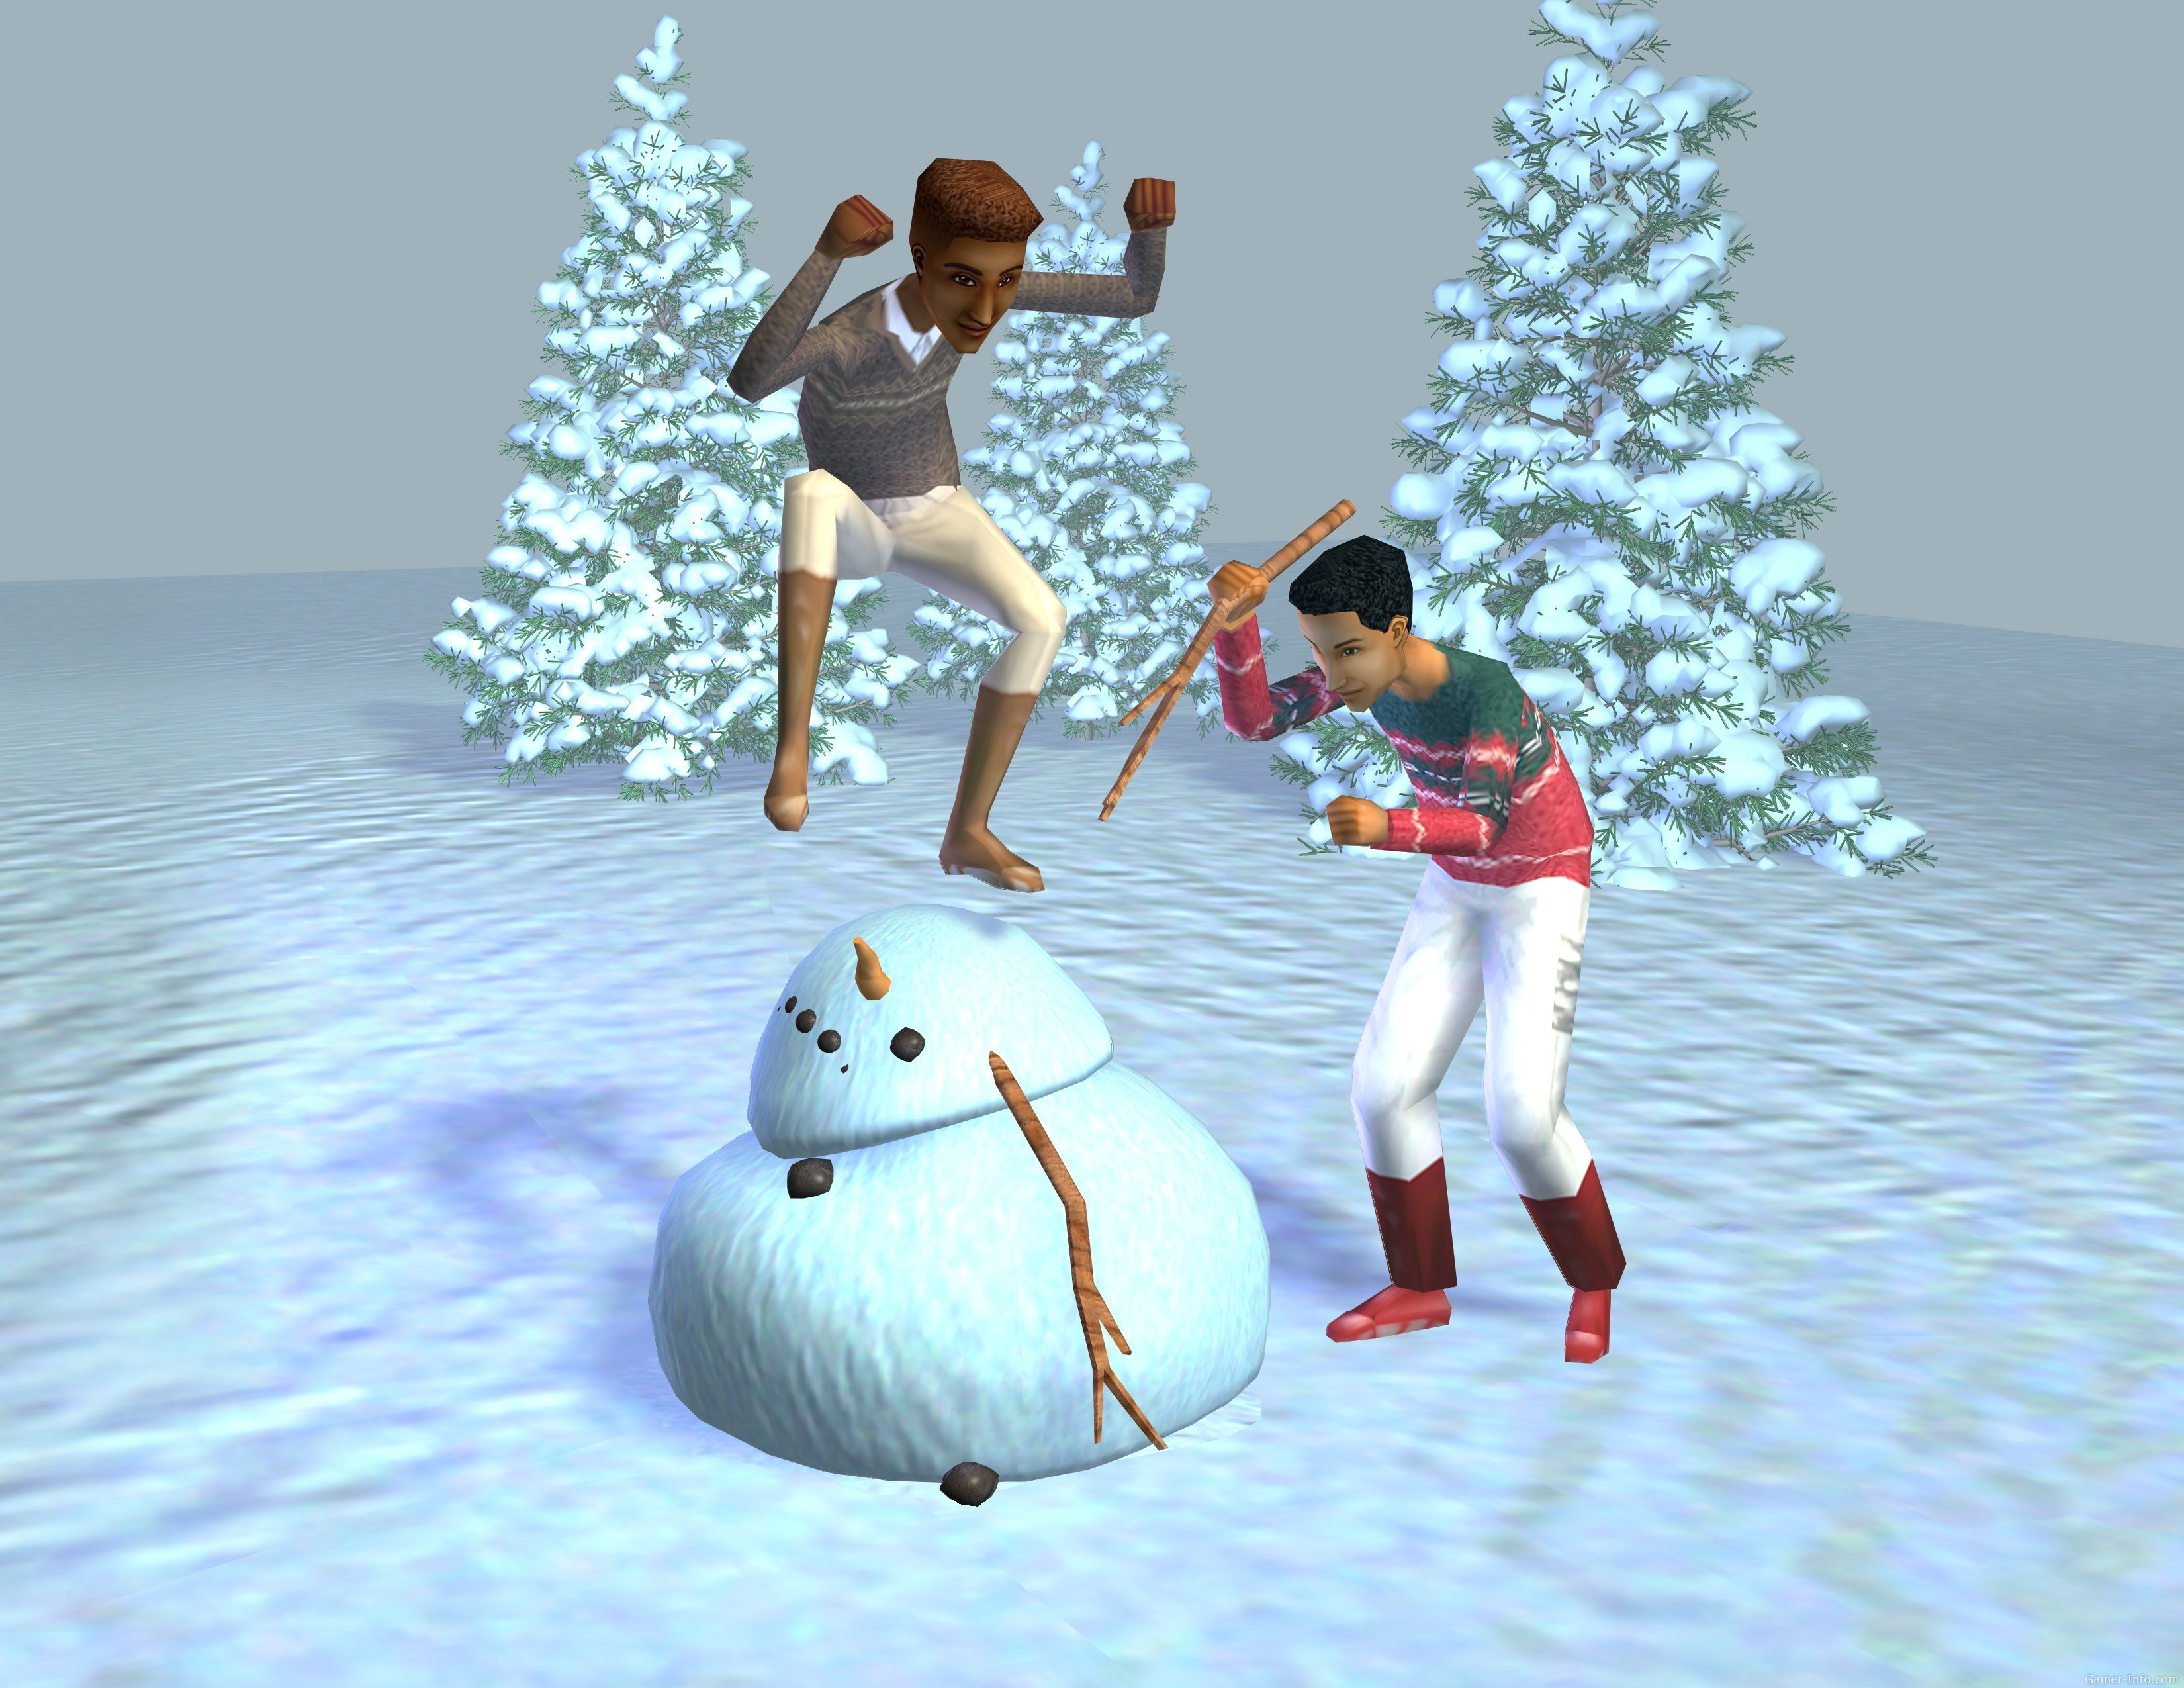 The Sims: Vacation - дата выхода, отзывы: http://gamer-info.com/game/the-sims-vacation/